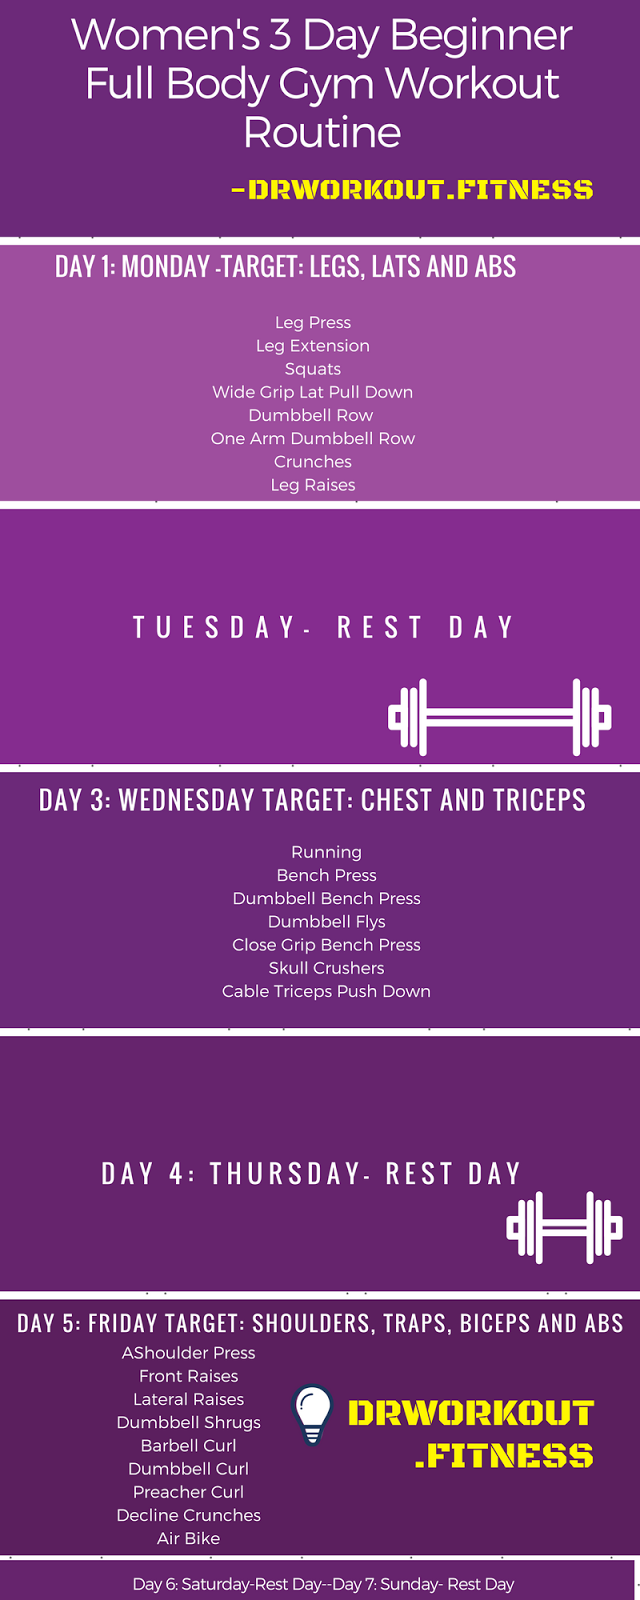 women s 3 day beginner full body gym workout plan projects to try